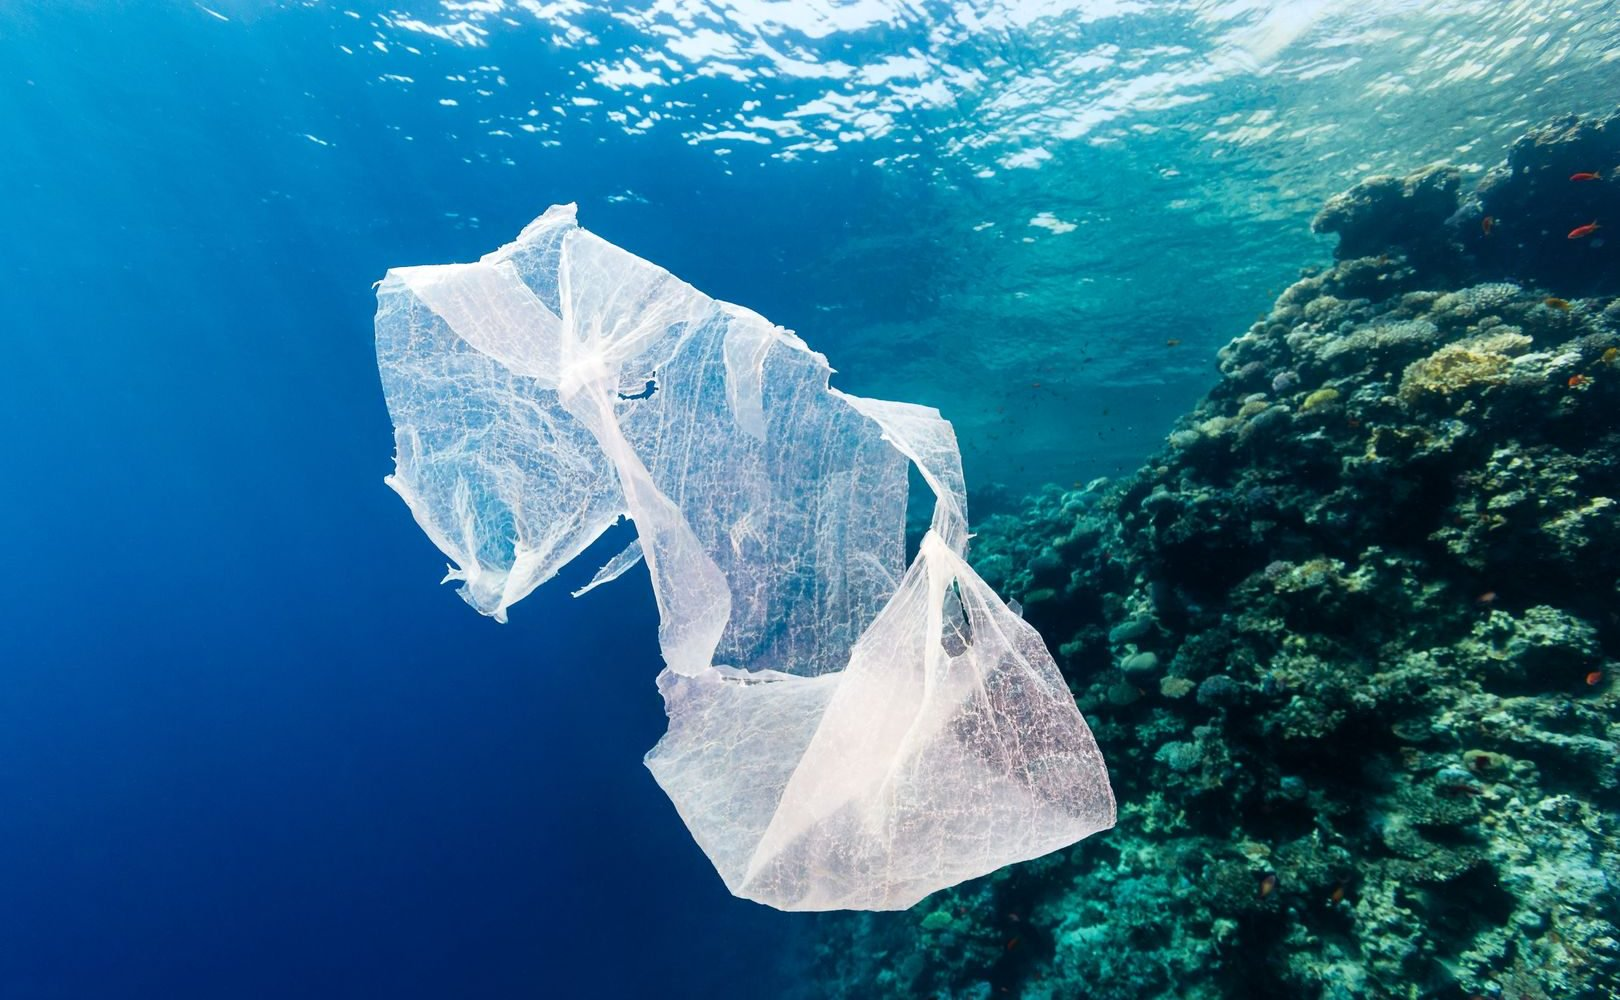 Government pledges £61 million to tackle plastic pollution in oceans